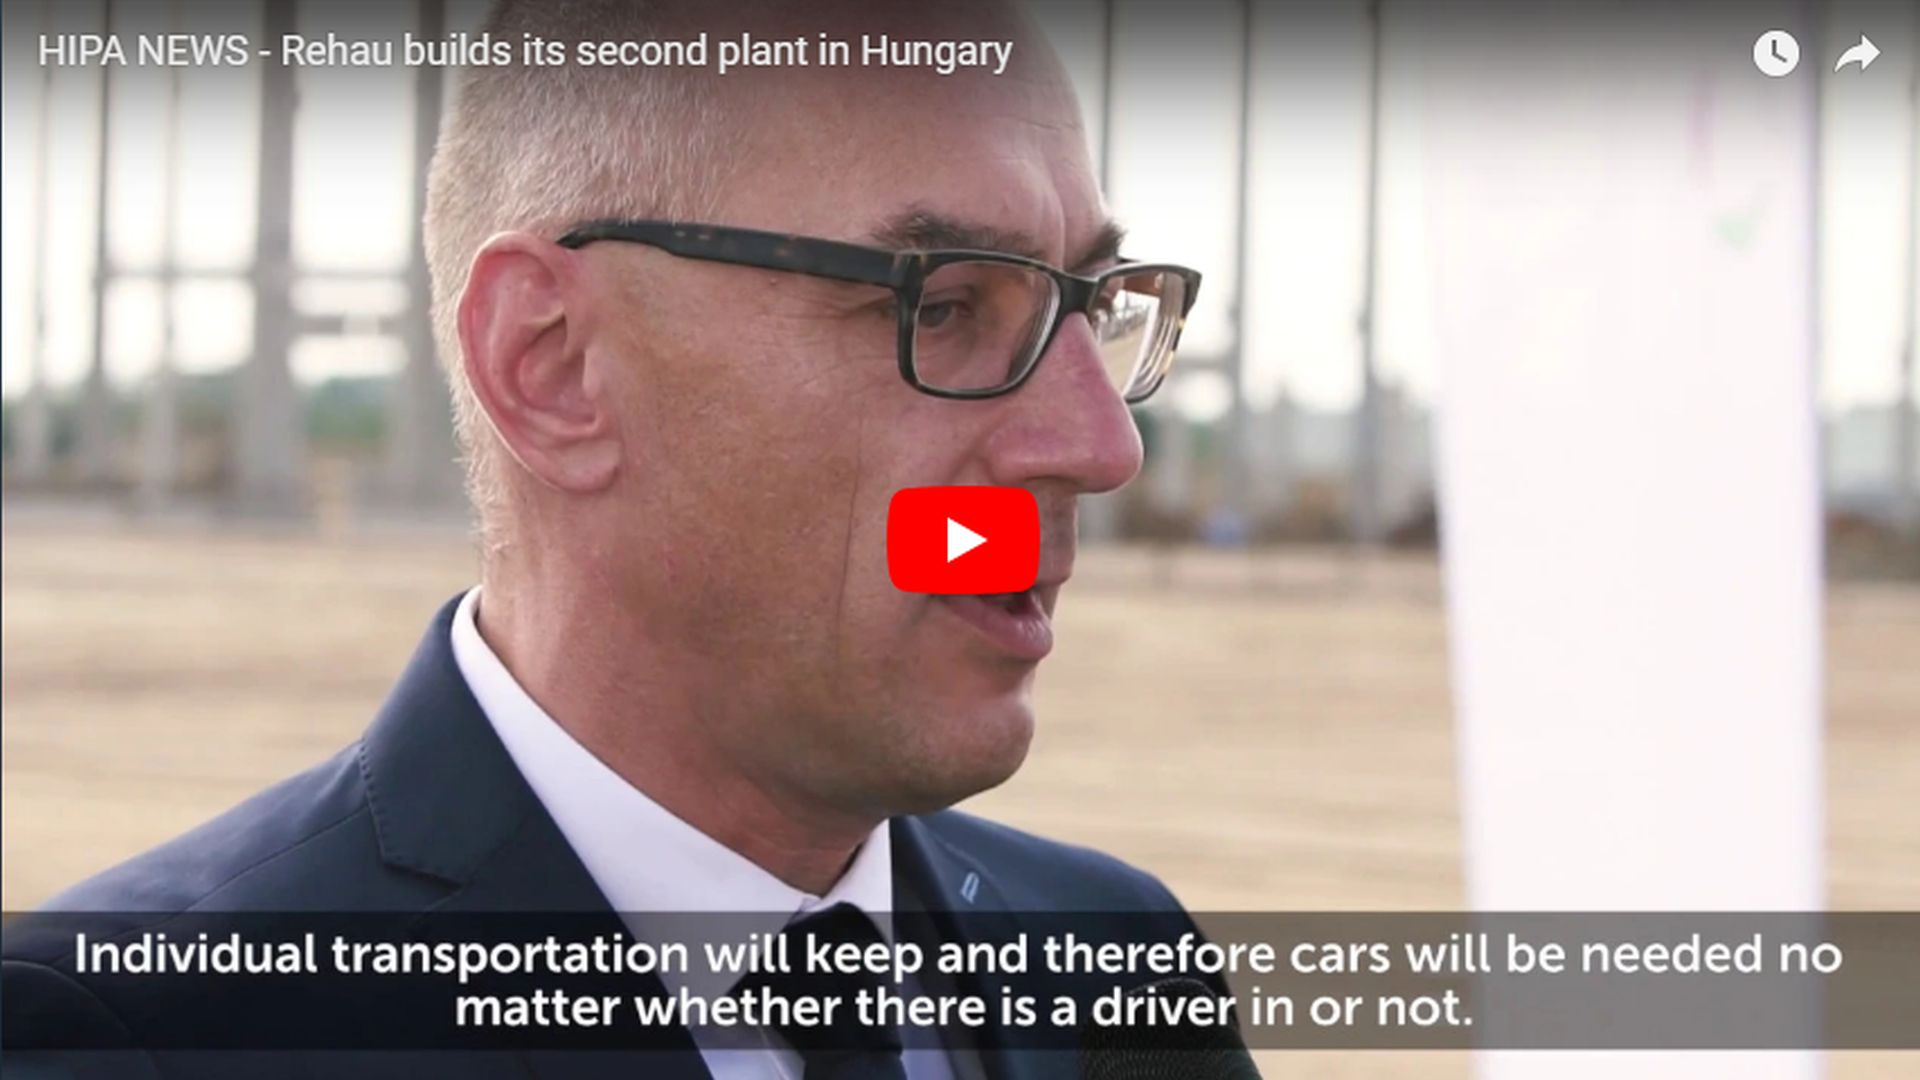 Rehau is to build its second plant in Hungary - VIDEO REPORT